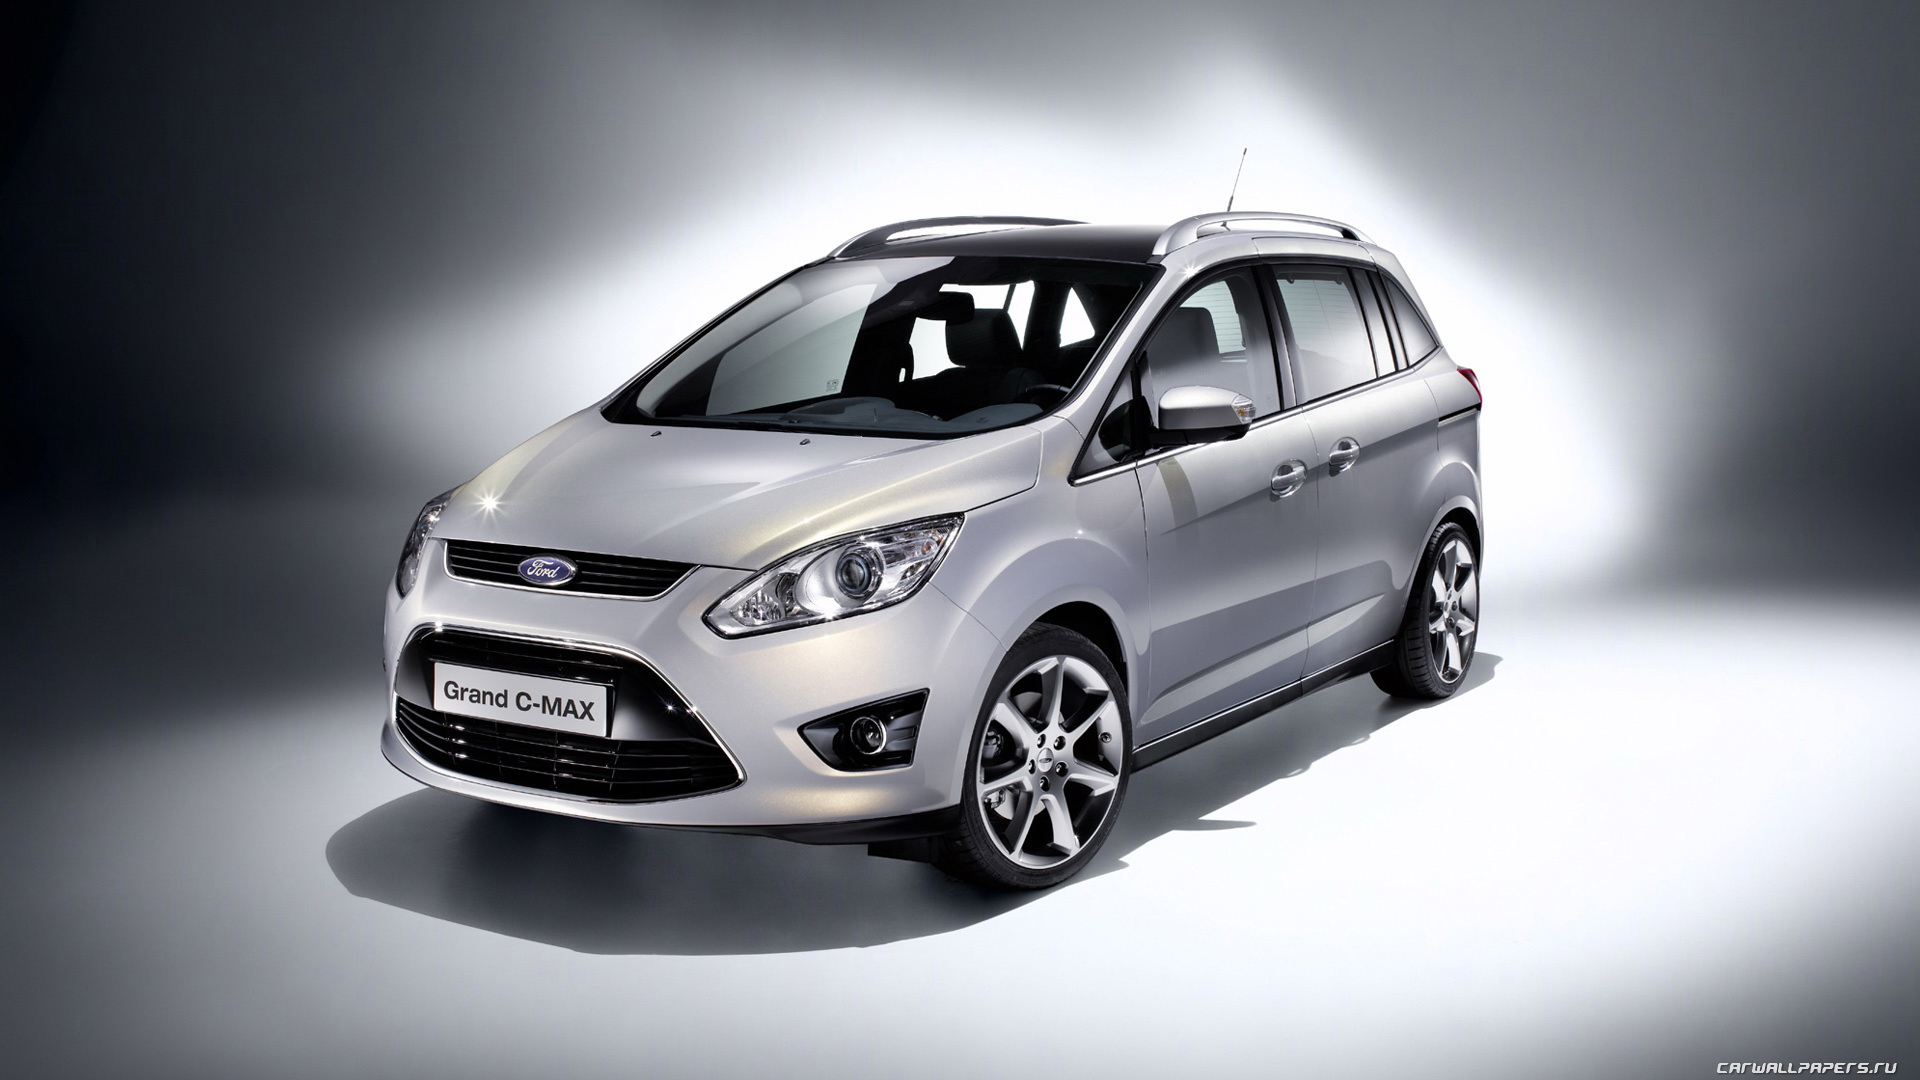 2010 Ford C-Max #9